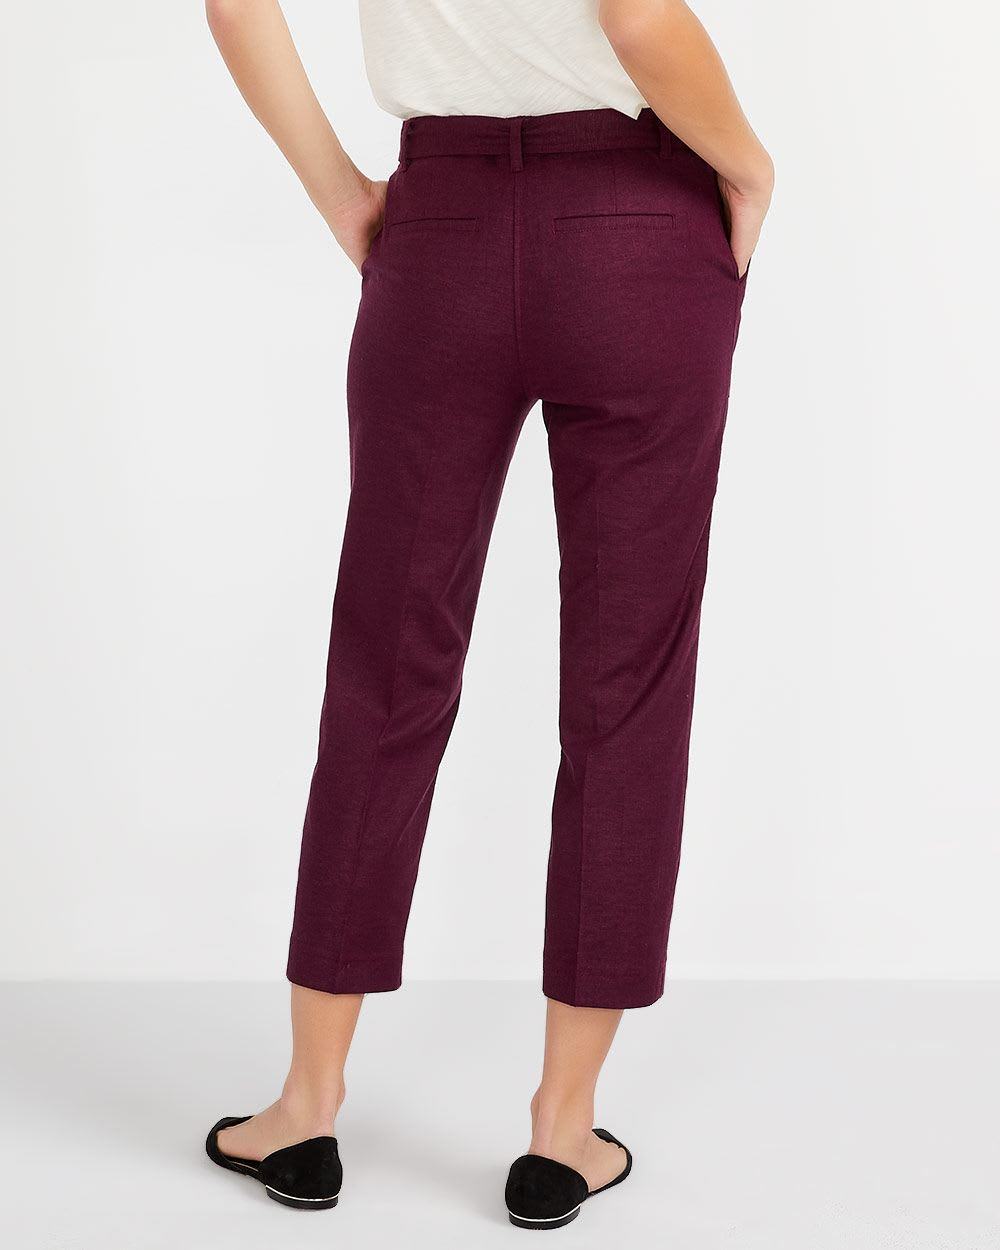 Linen Blend Crop Pants with Sash